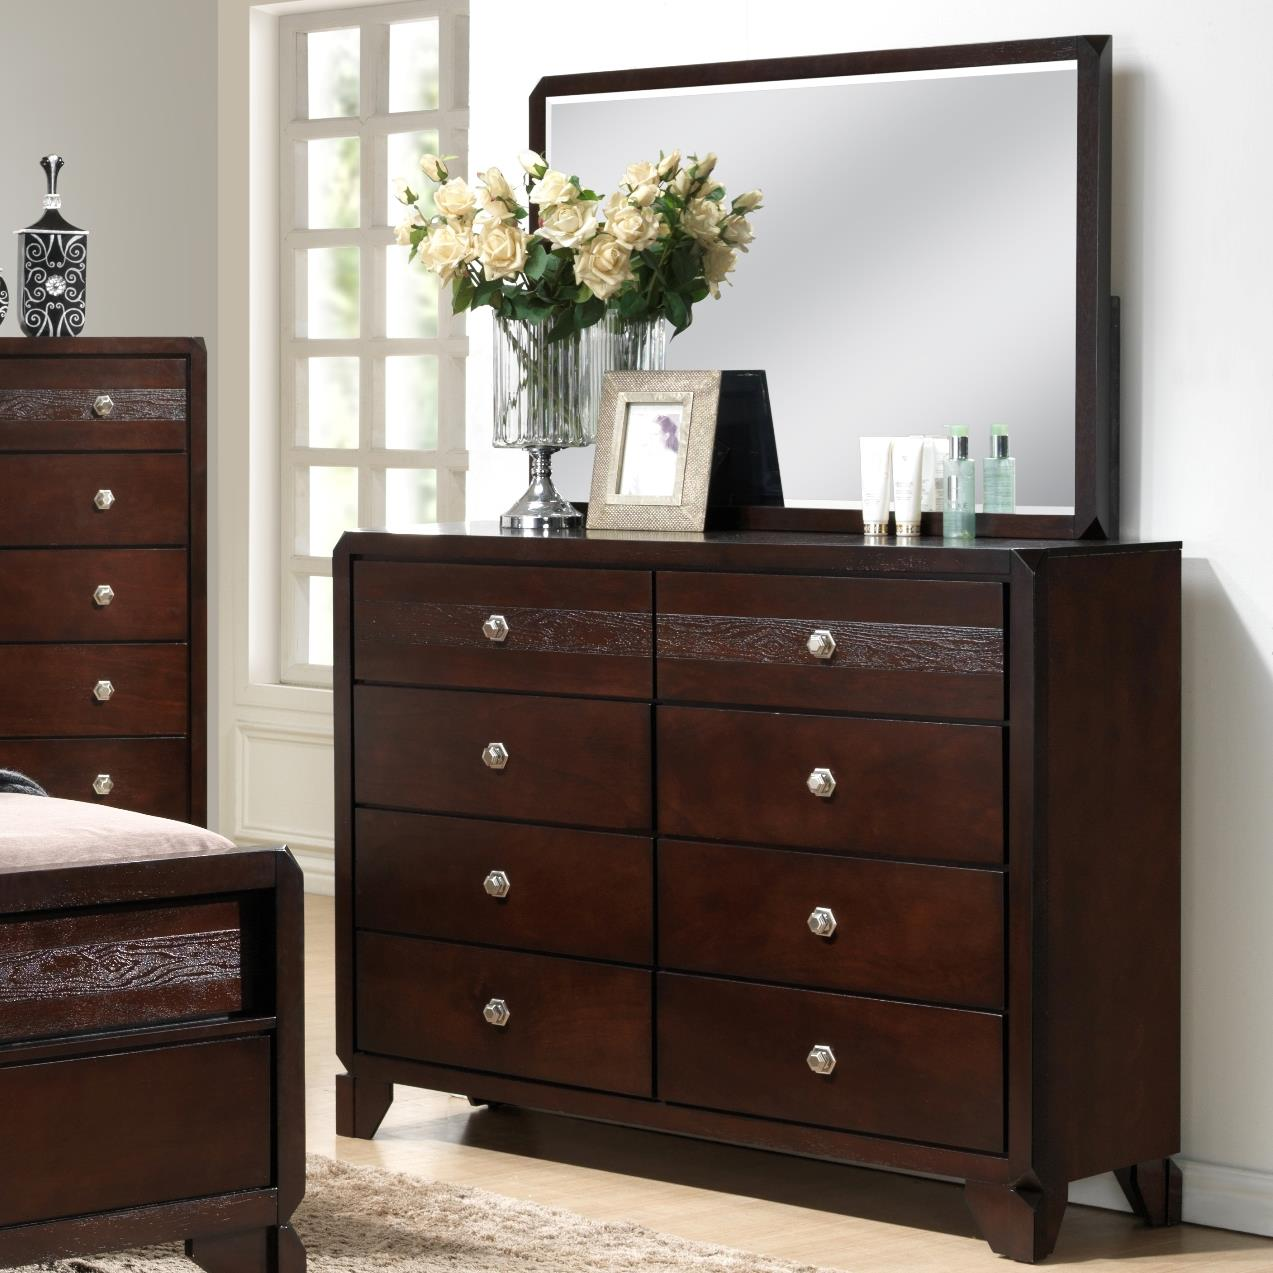 Tamblin Dresser and Mirror Set by Crown Mark at Northeast Factory Direct